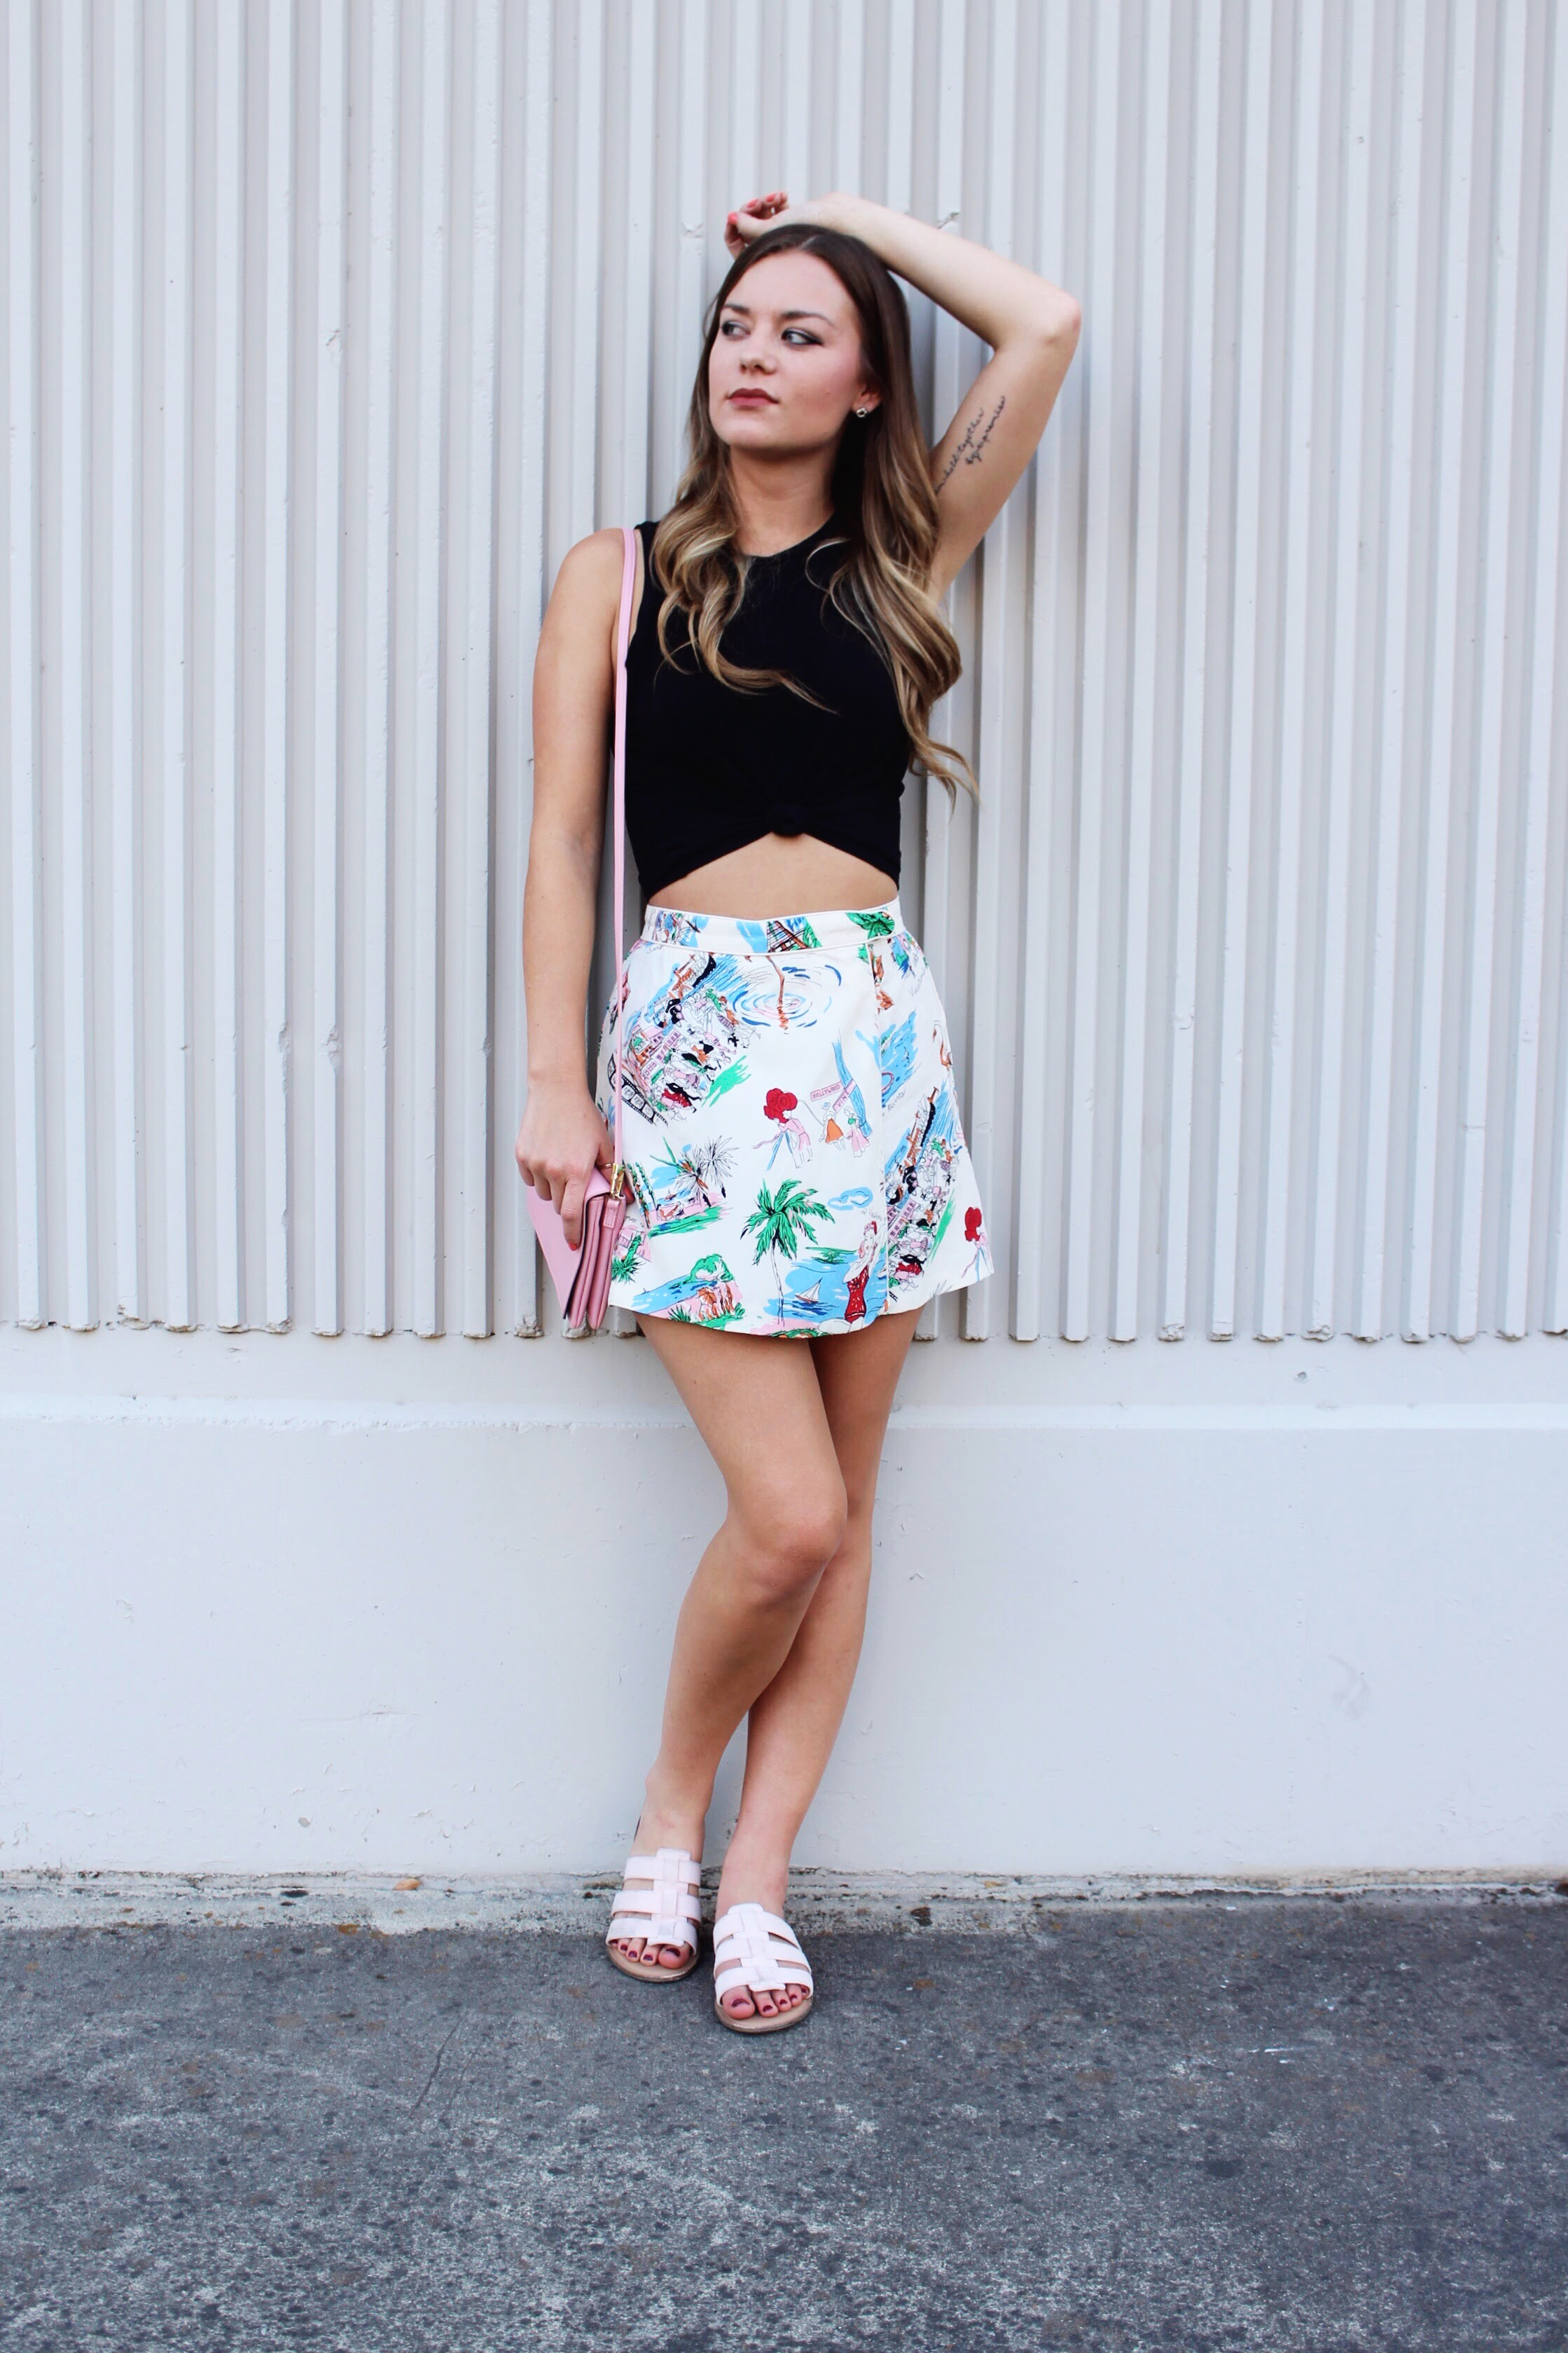 Black Knotted Crop Top with Old Hollywood Print Fabric Skort and Strappy Flat Slip On Sandals.